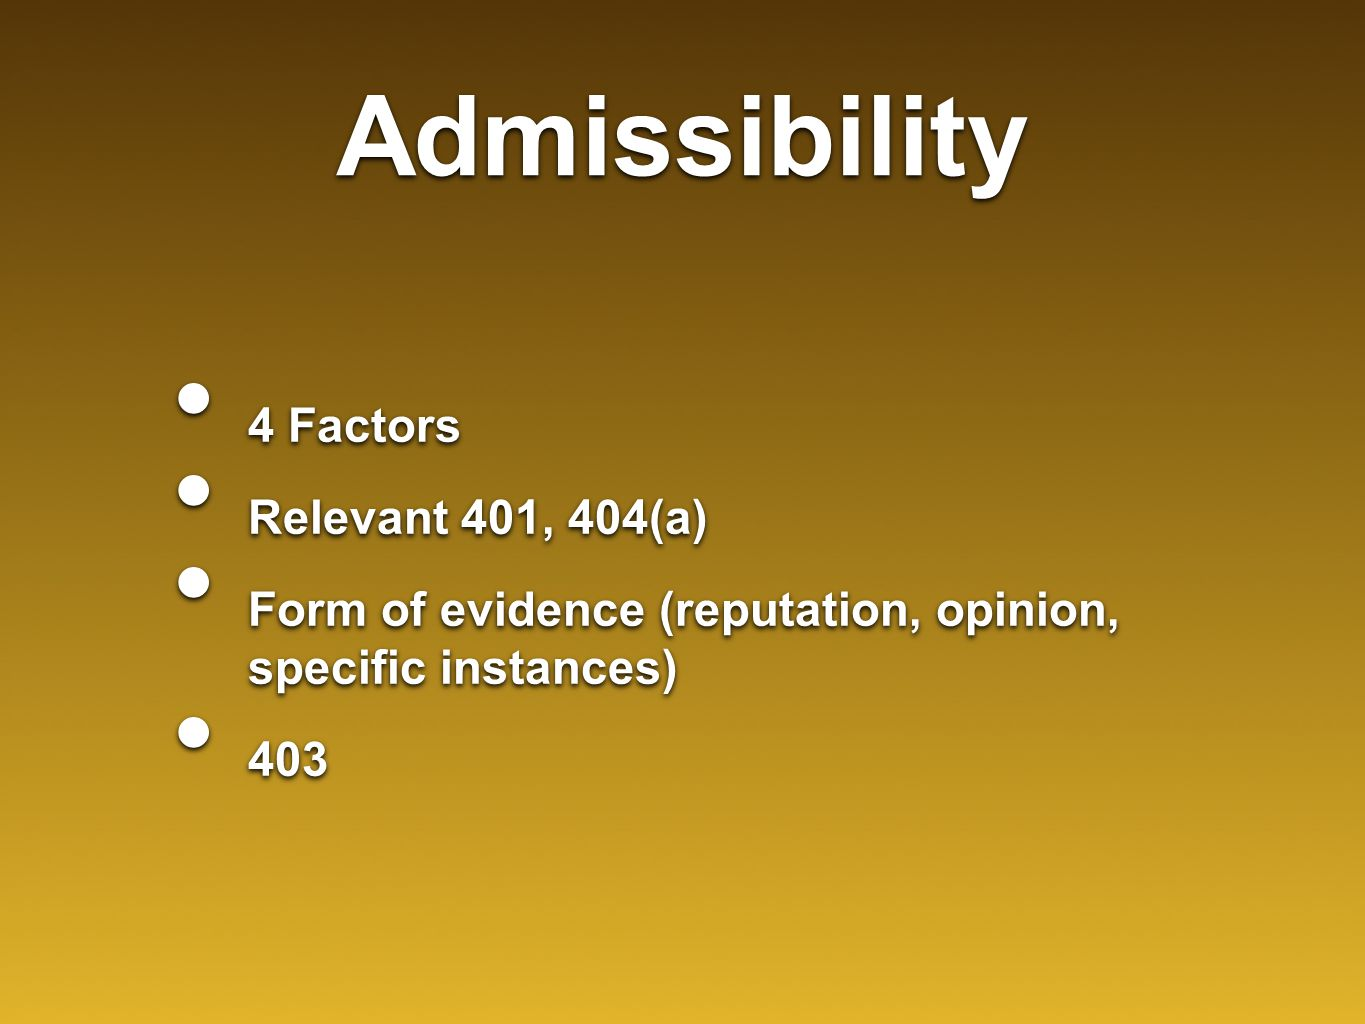 Admissibility 4 Factors Relevant 401, 404(a) Form of evidence (reputation, opinion, specific instances) 403 4 Factors Relevant 401, 404(a) Form of evi